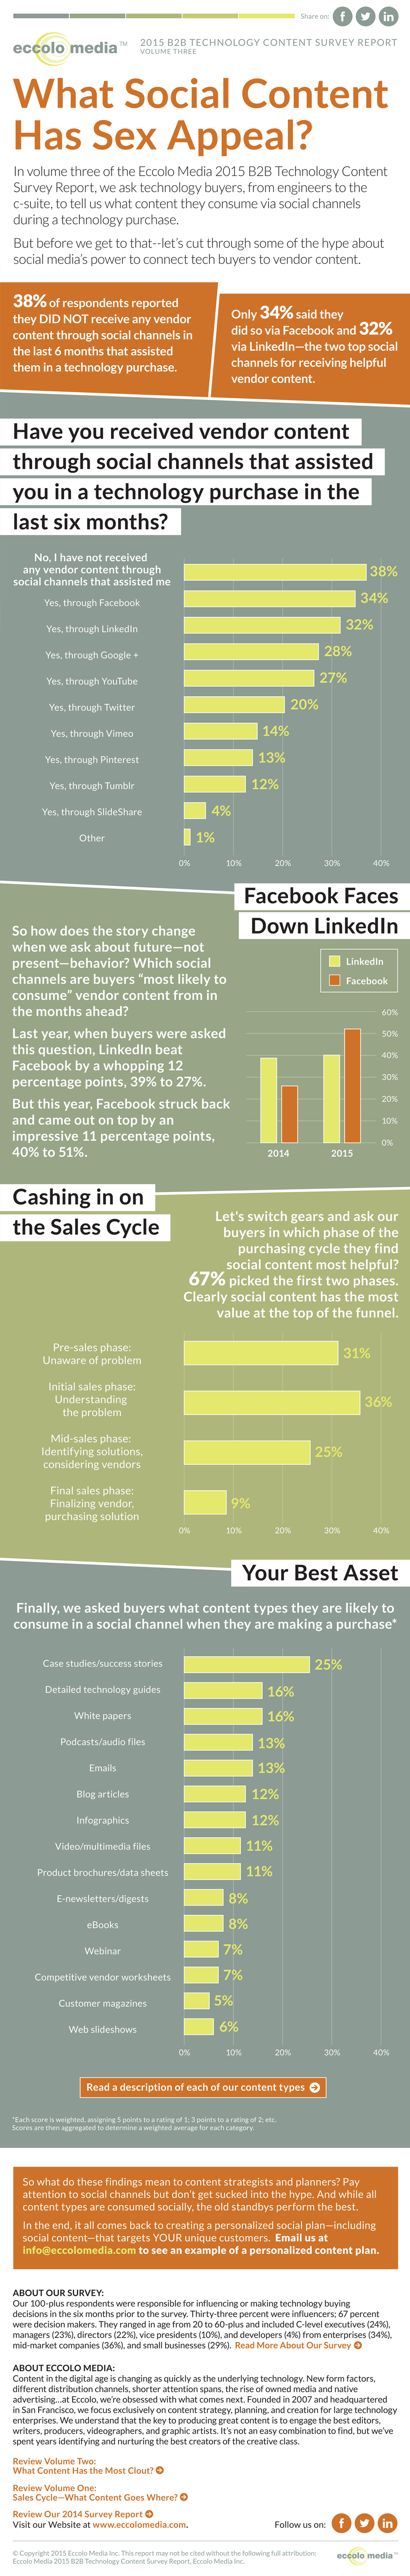 Infographic Mobile Statistics Stats amp Facts 2011